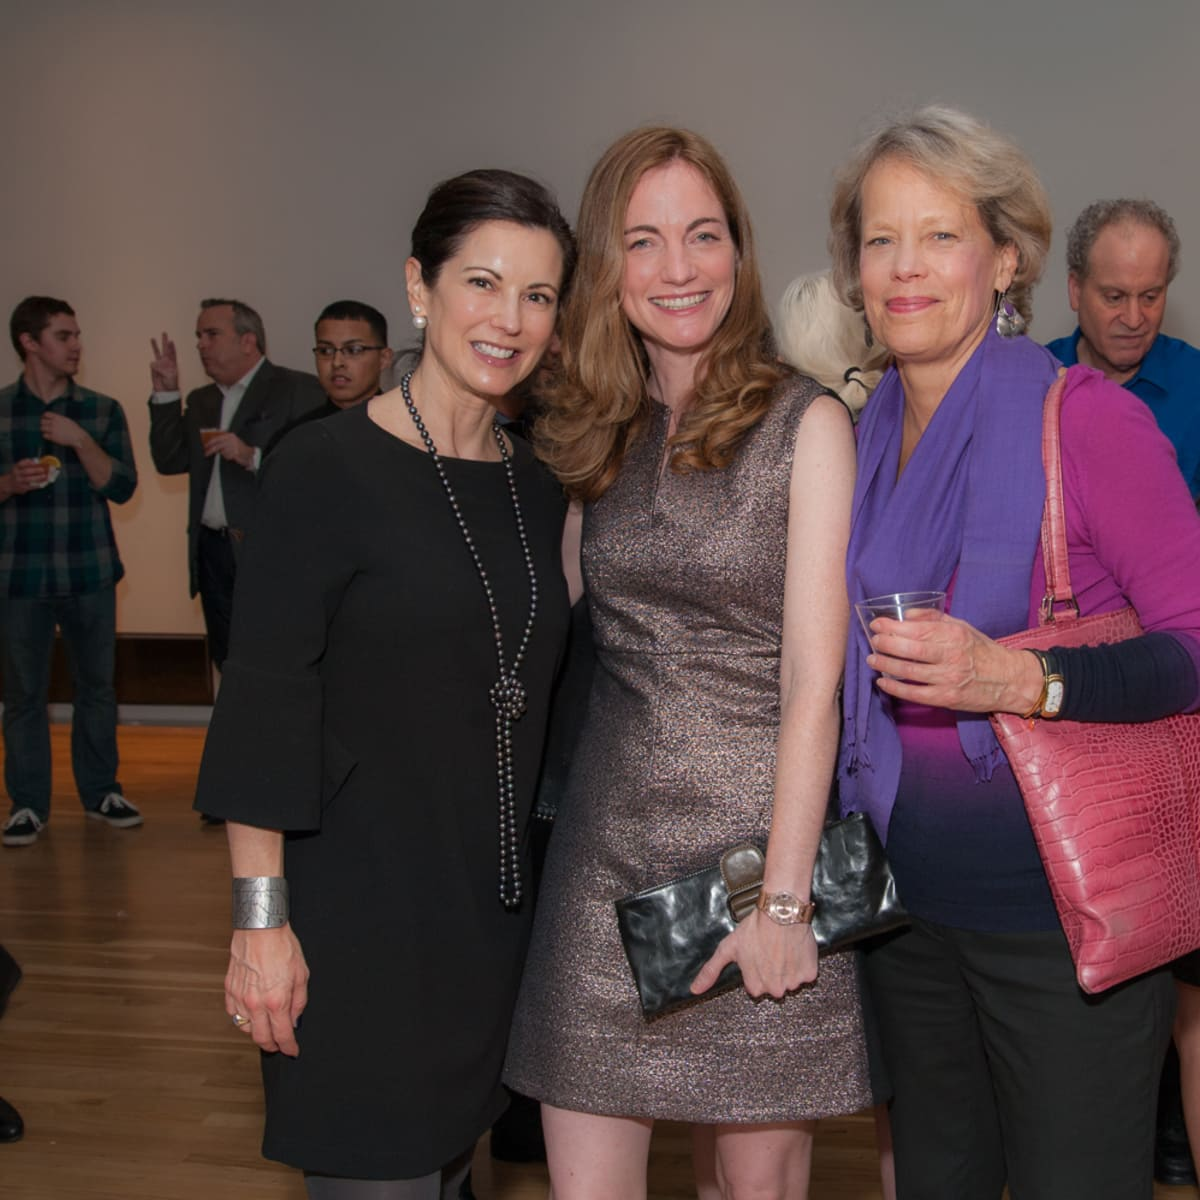 News, DiverseWorks MATCH party, Dec. 2015 Jennifer Koller, Allison Hunter, Nancy Cook